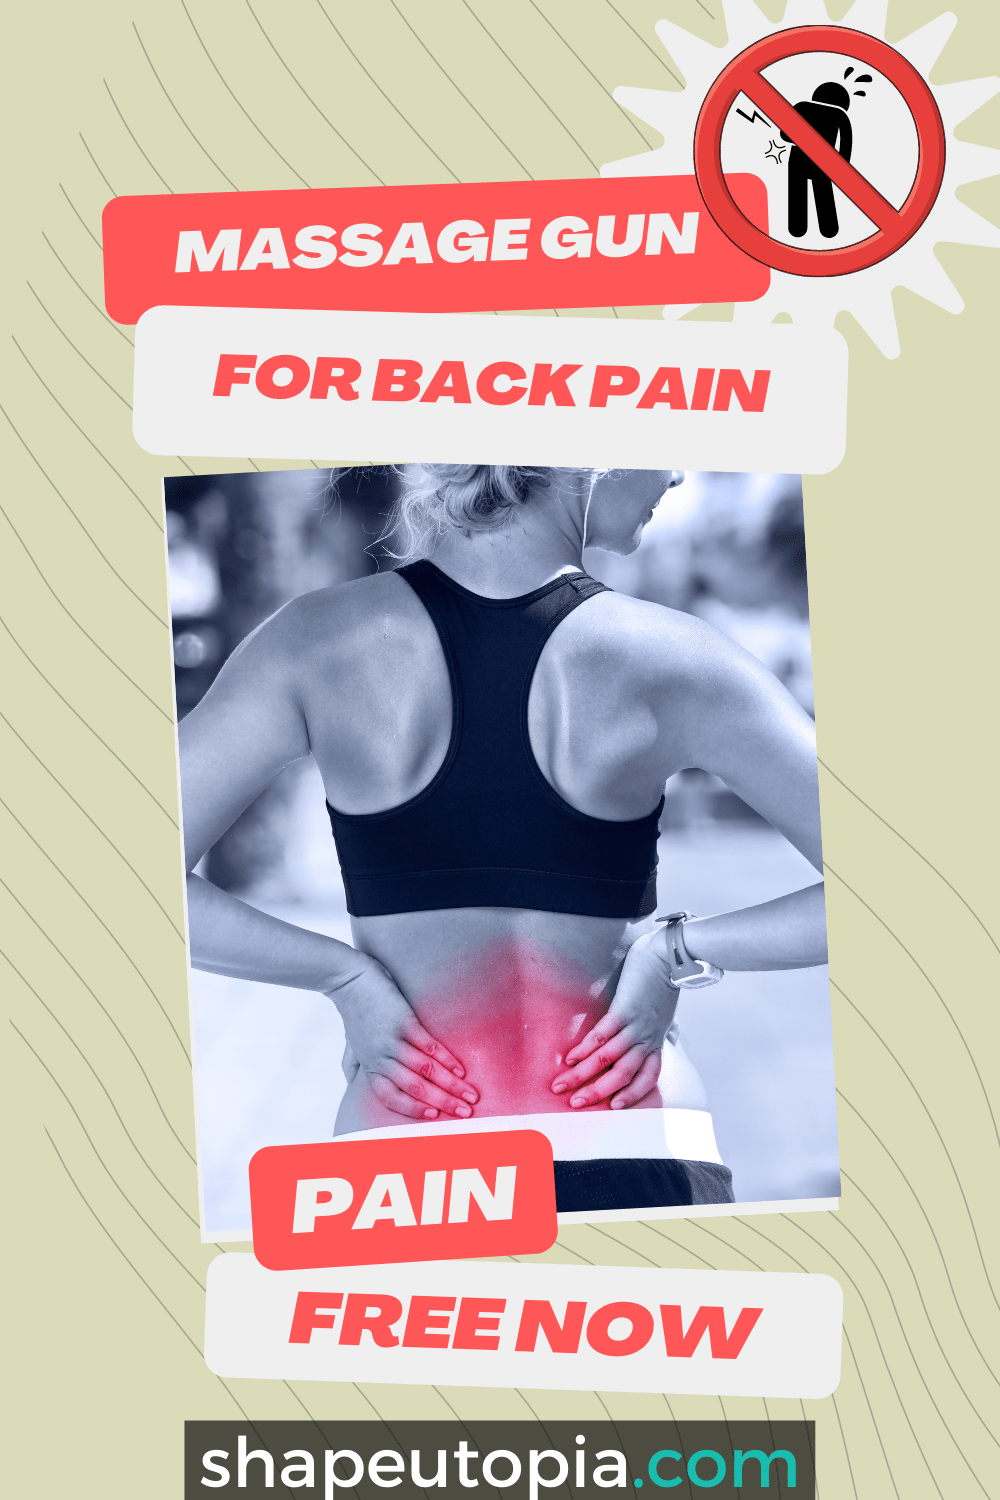 Getting Pain-Free With Using A Massage Gun For Lower Back Pain